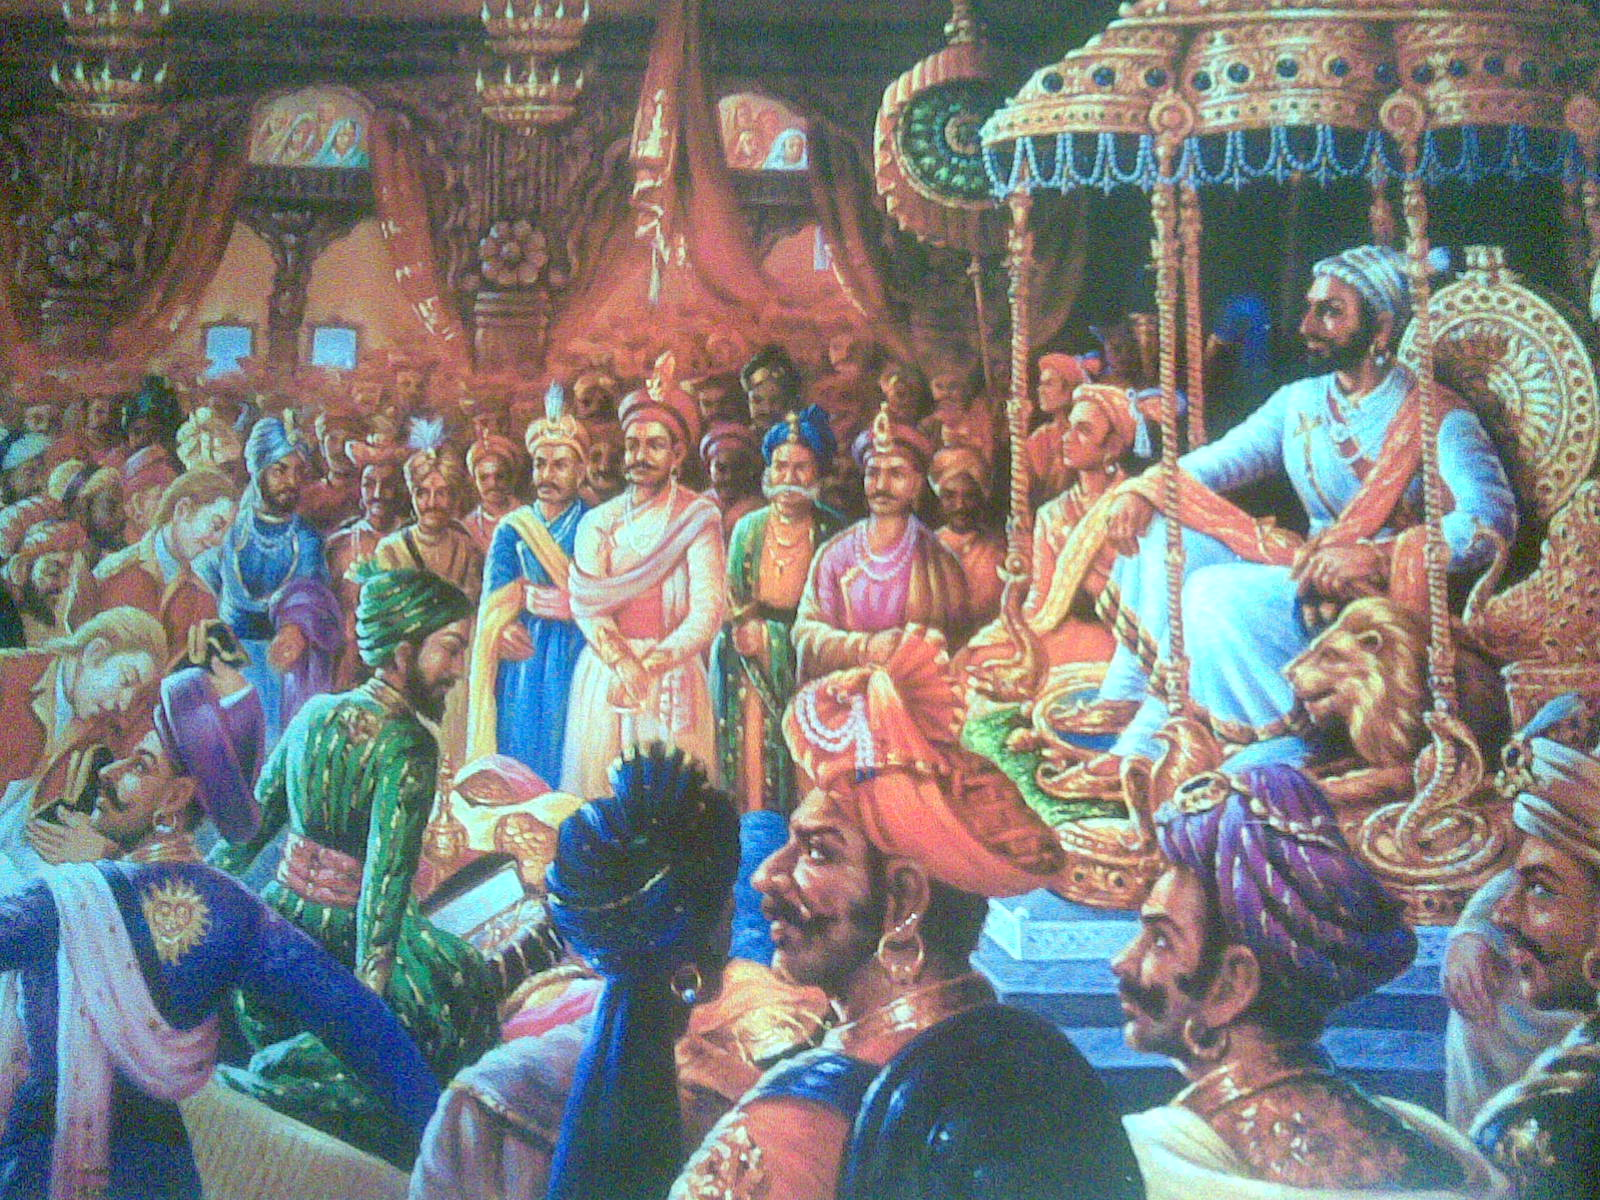 Maratha Chronicles: The Coronation of Shivaji